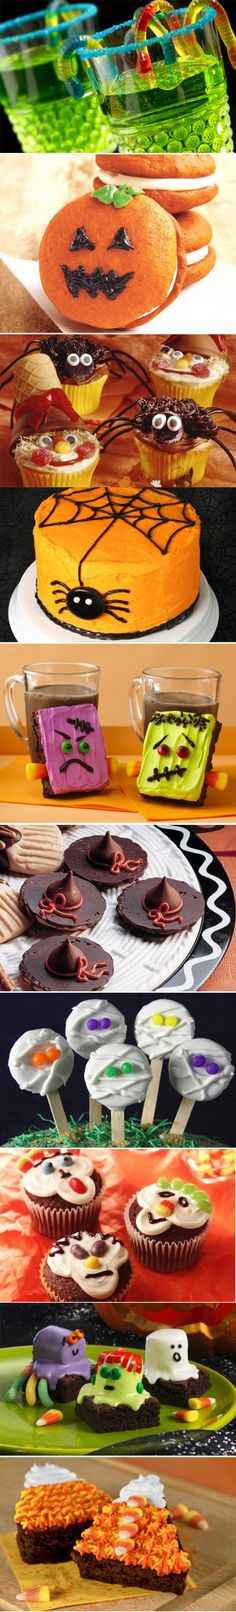 Tons of Halloween Treats! This will come in handy for Halloween! :)